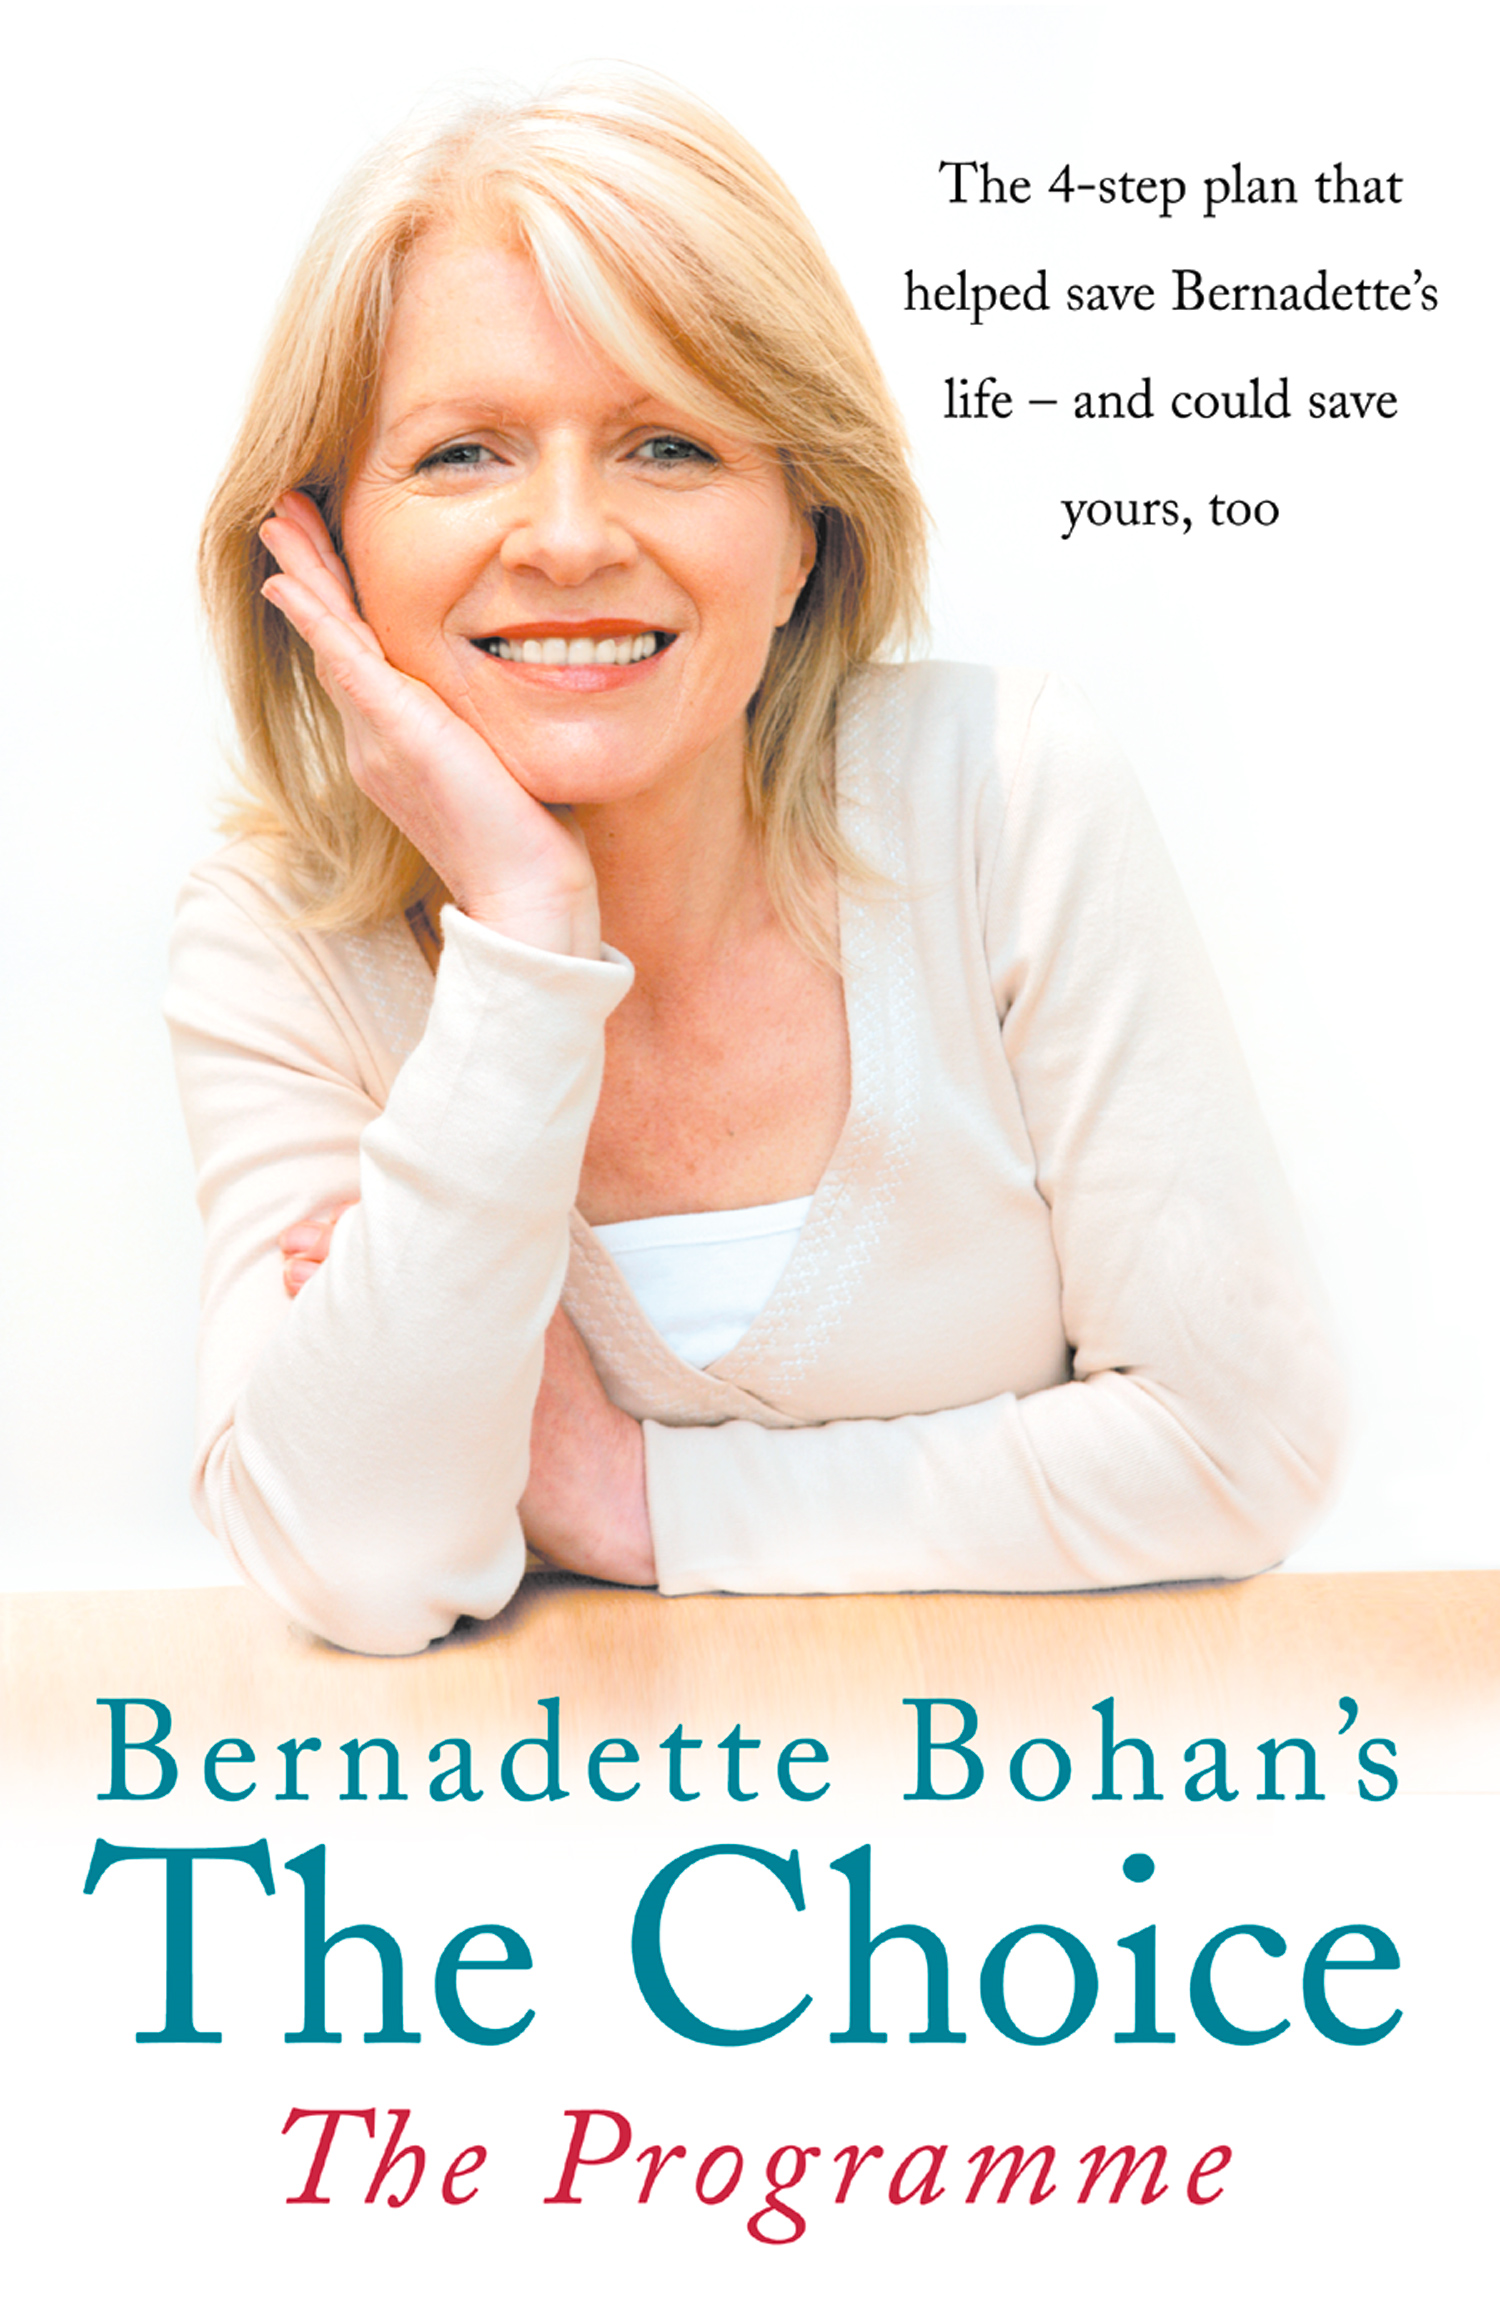 Bernadette Bohan?s The Choice: The Programme: The simple health plan that saved Bernadette?s life ? and could help save yours too